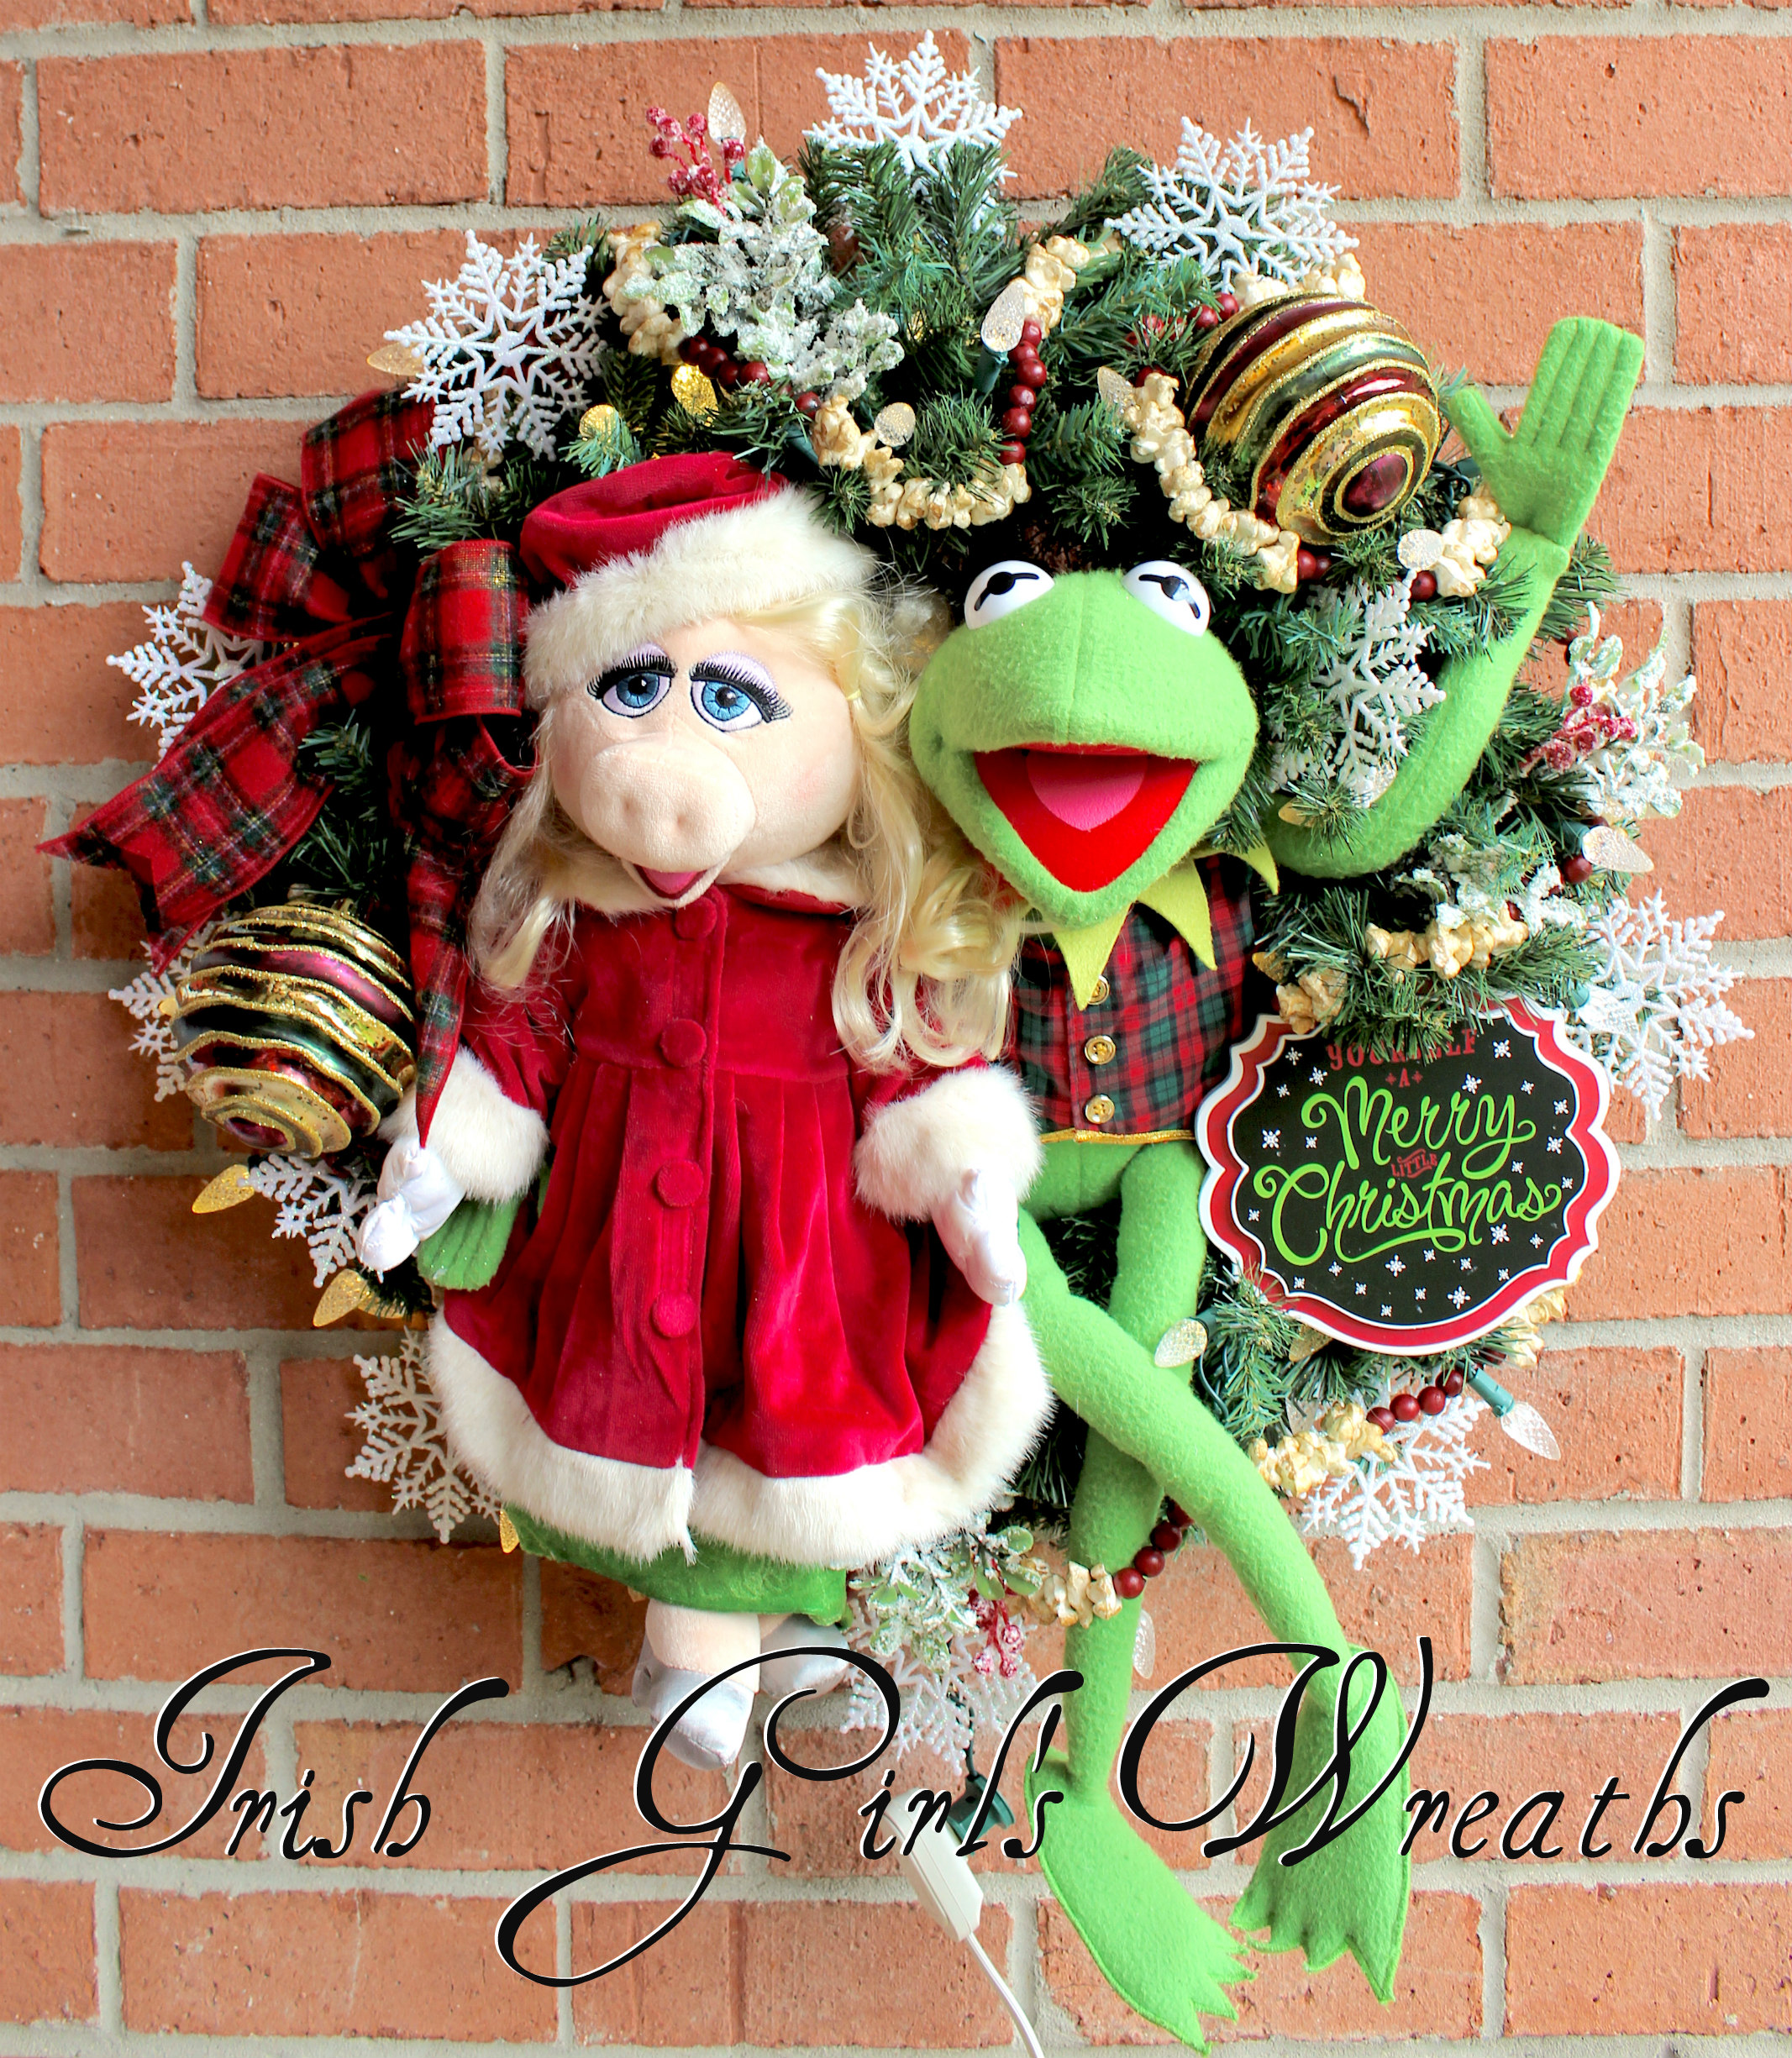 Kermit the Frog & Miss Piggy Merry Little Muppet Christmas Wreath, pre lit